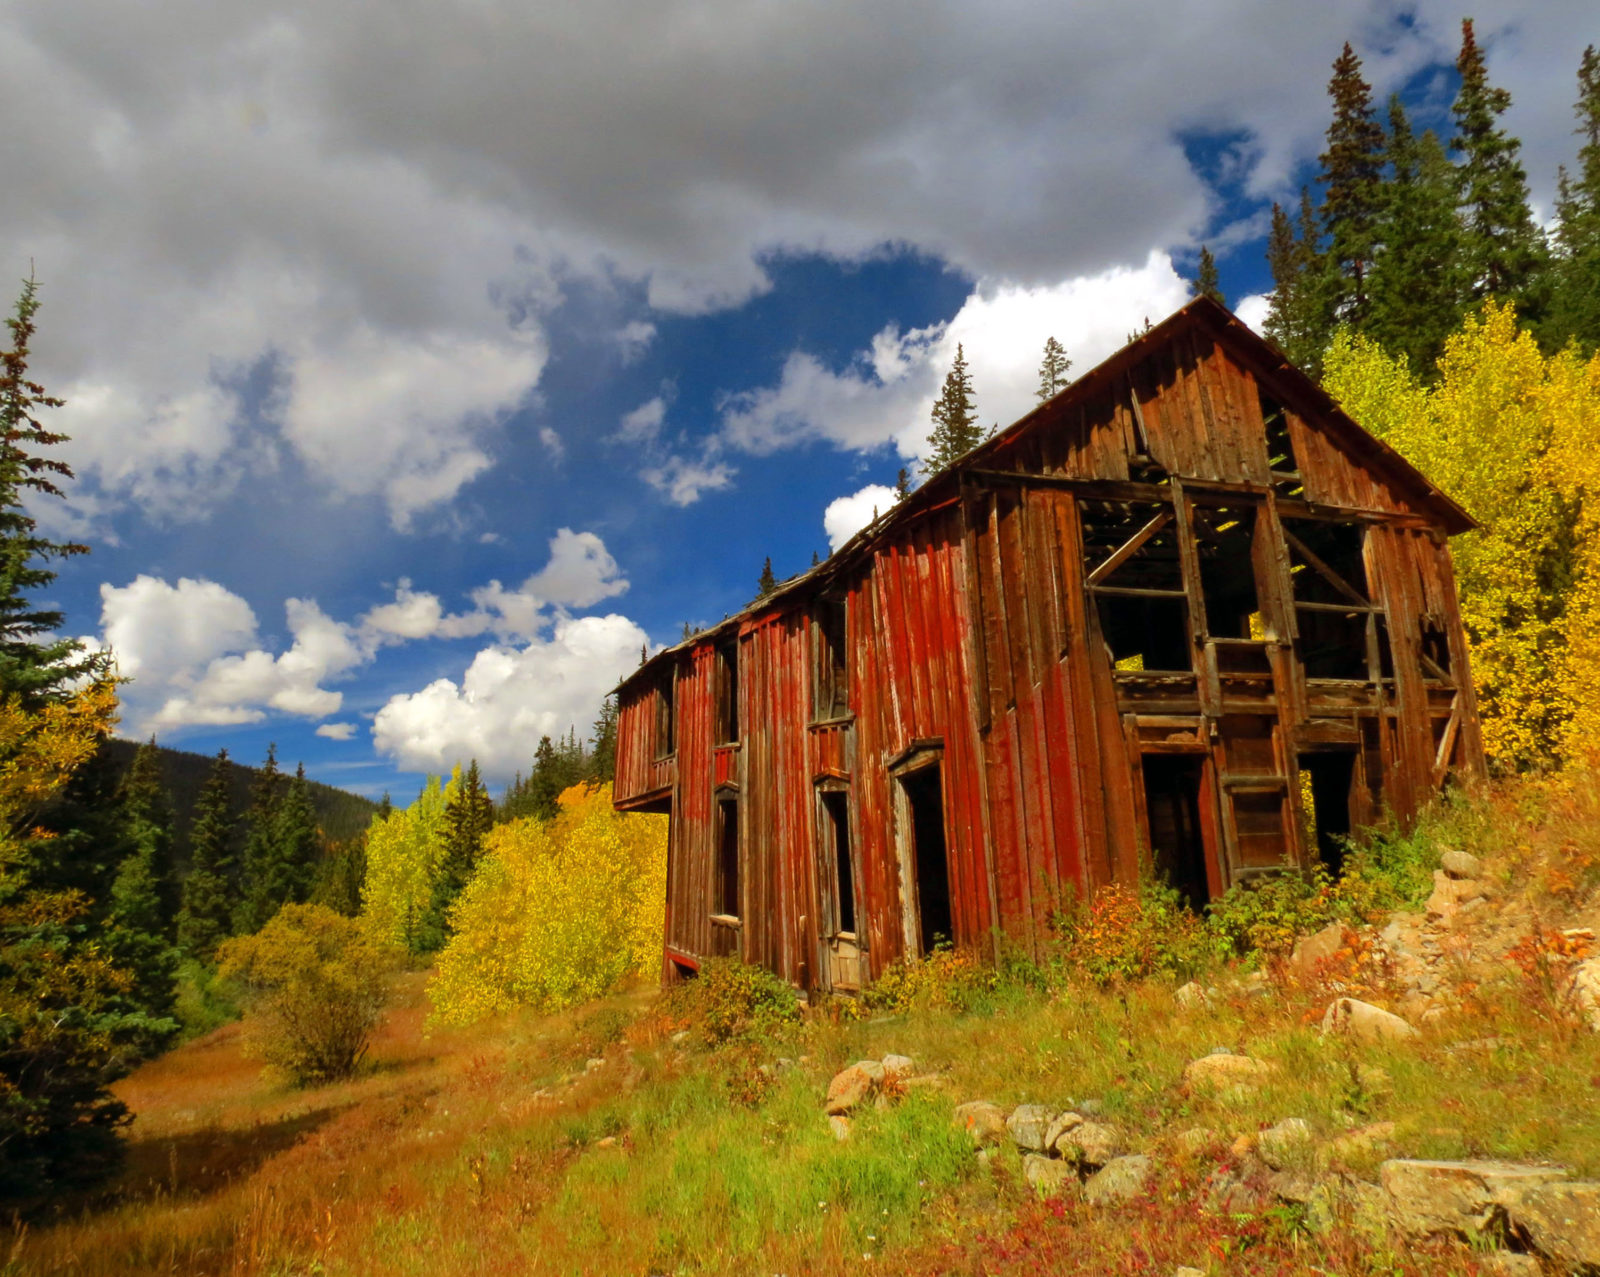 Miners' Bunkhouse